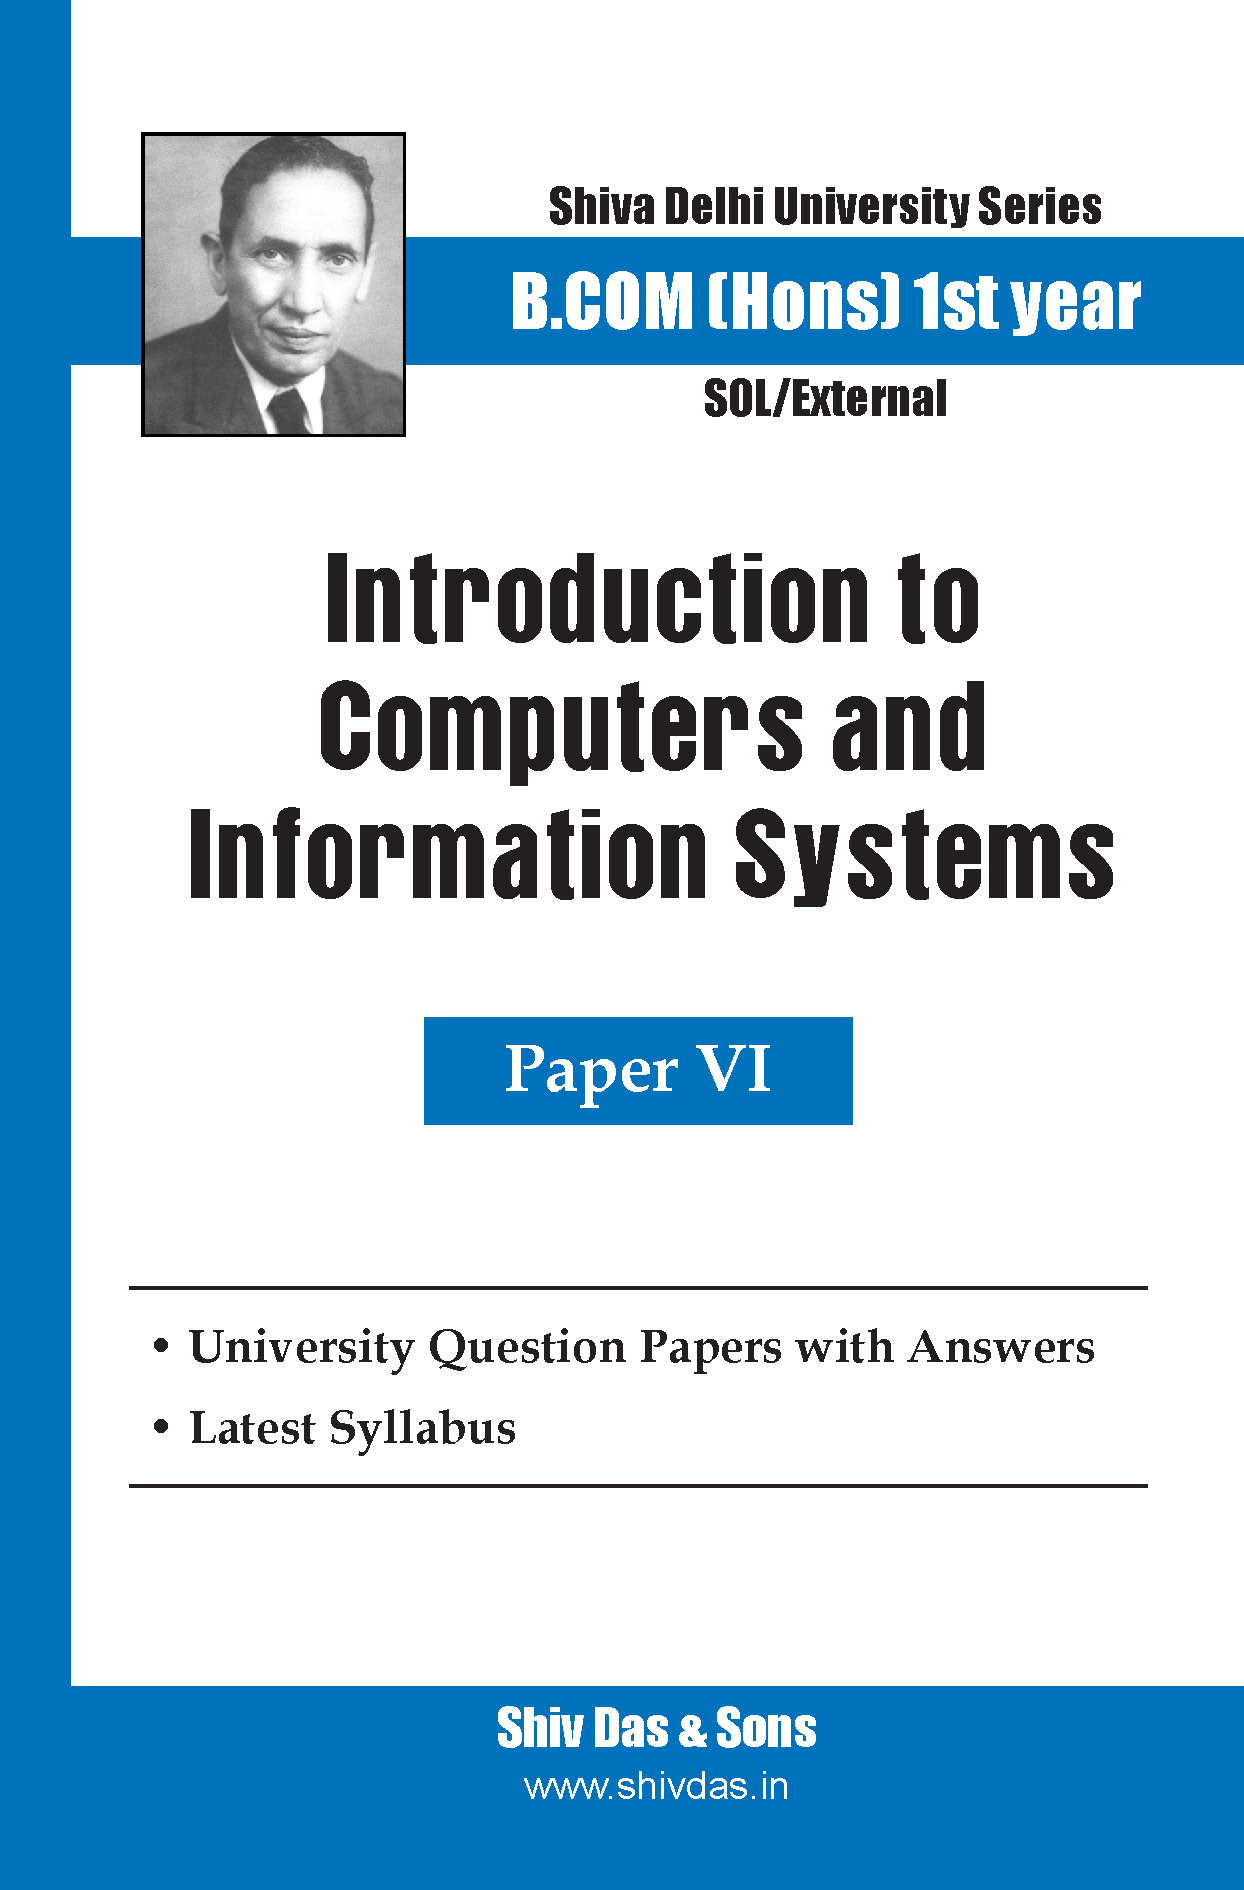 Introduction to Computers and Information System for B.Com Hons SOL/External 1st Year